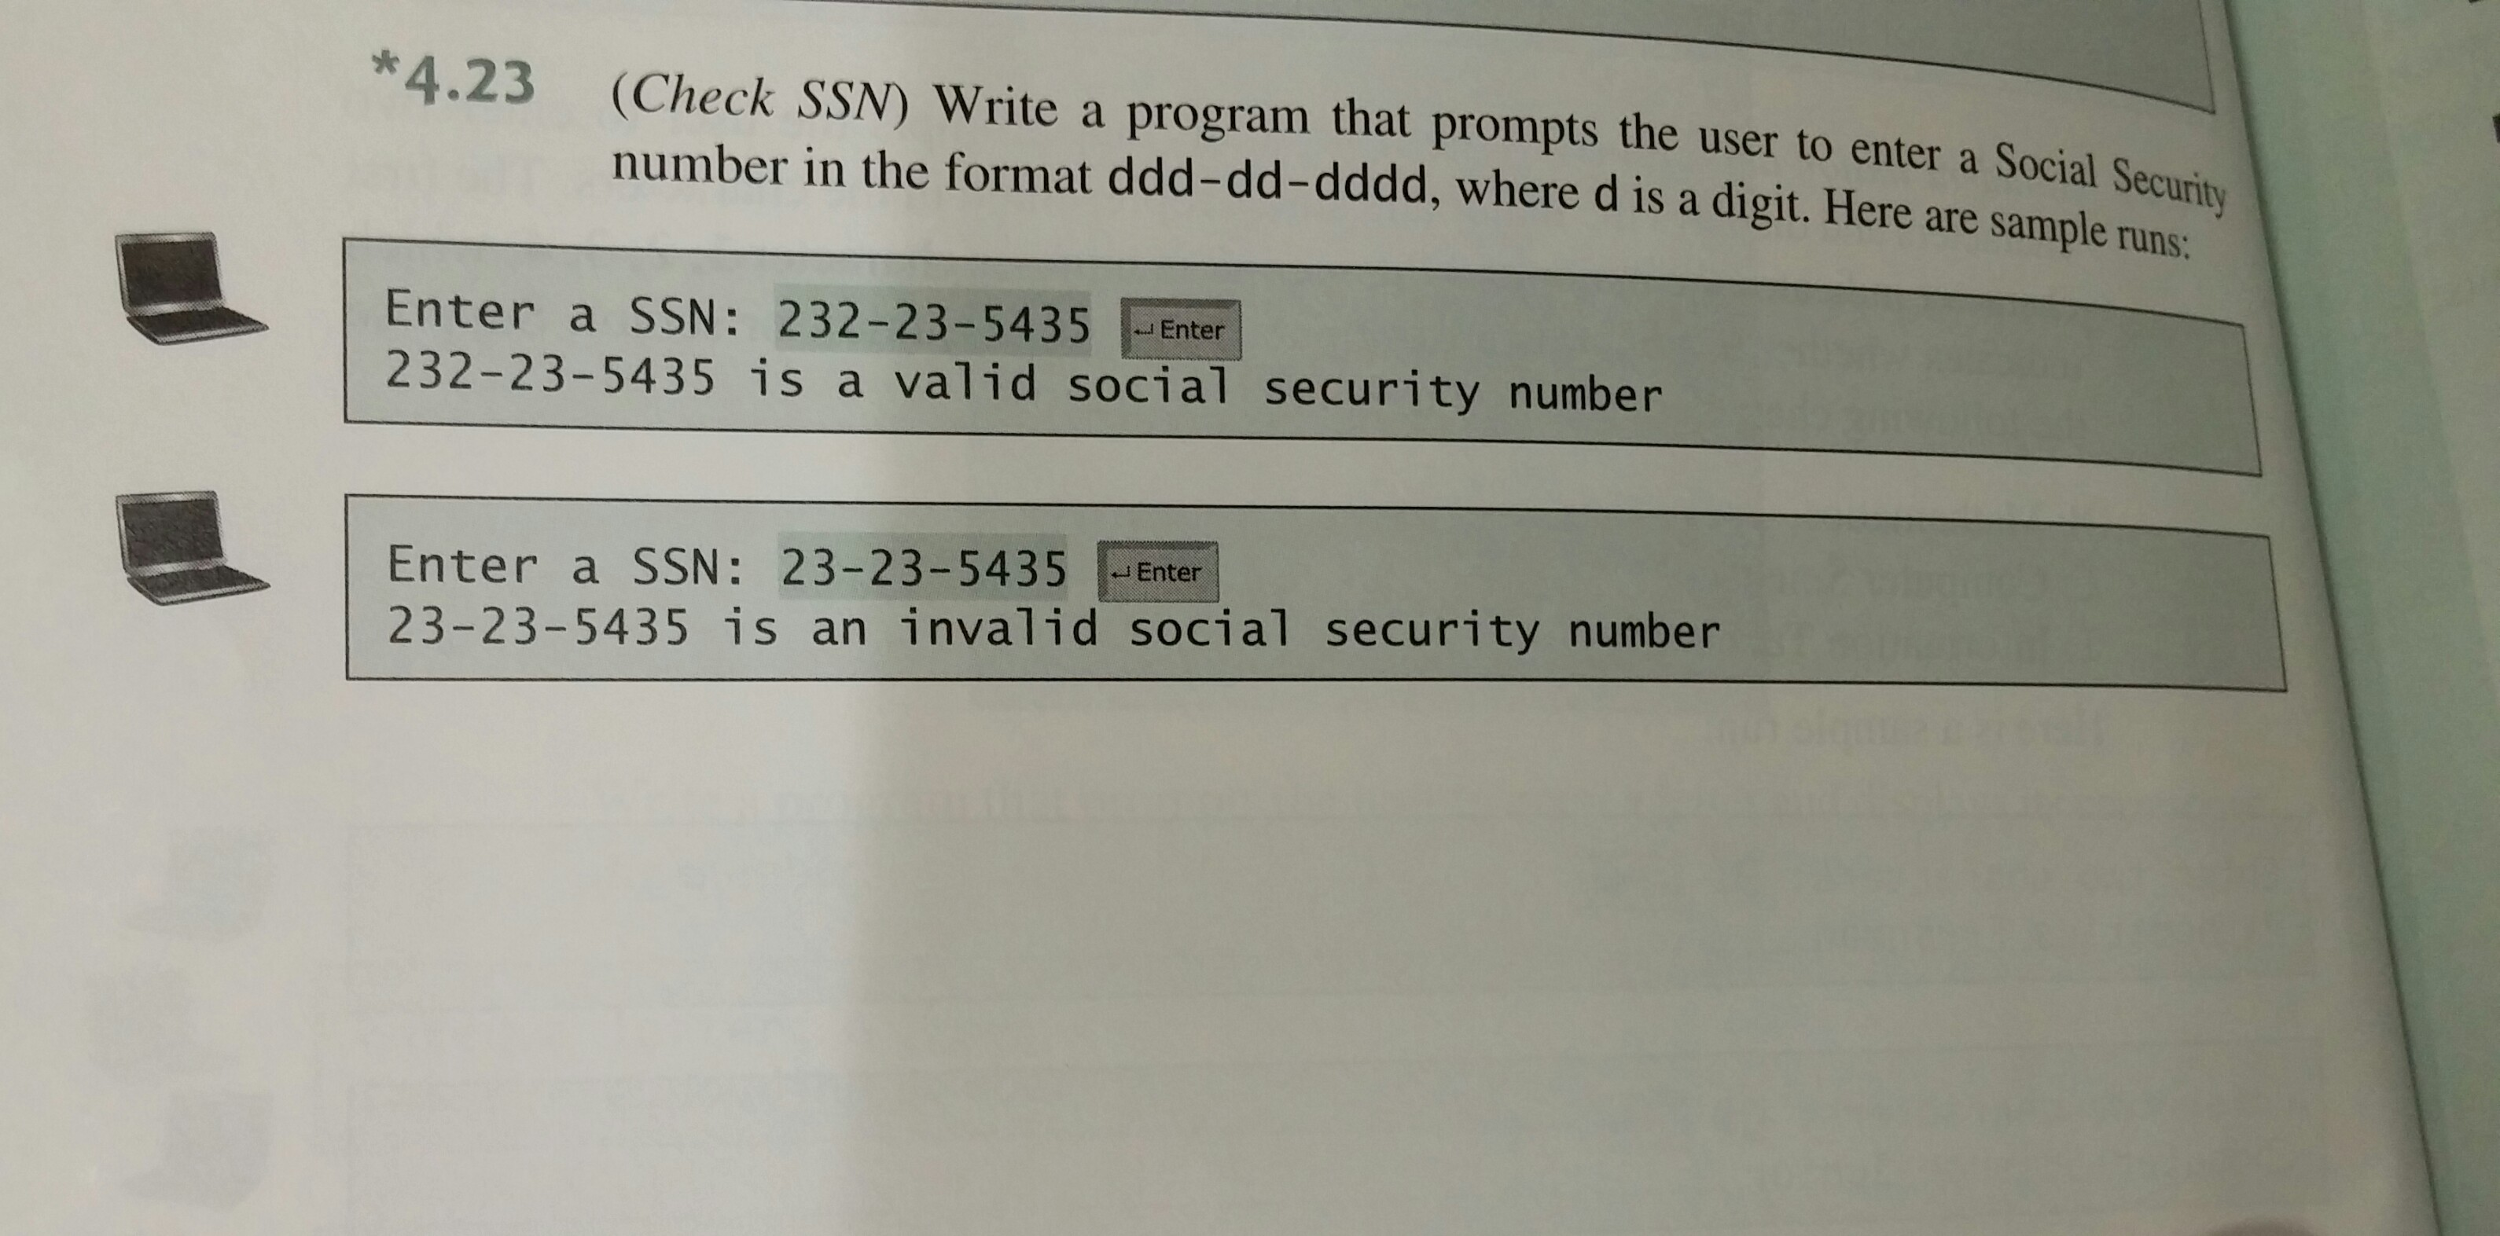 4.23 (Check SSN) Write A Program That Prompts The ... | Chegg.com